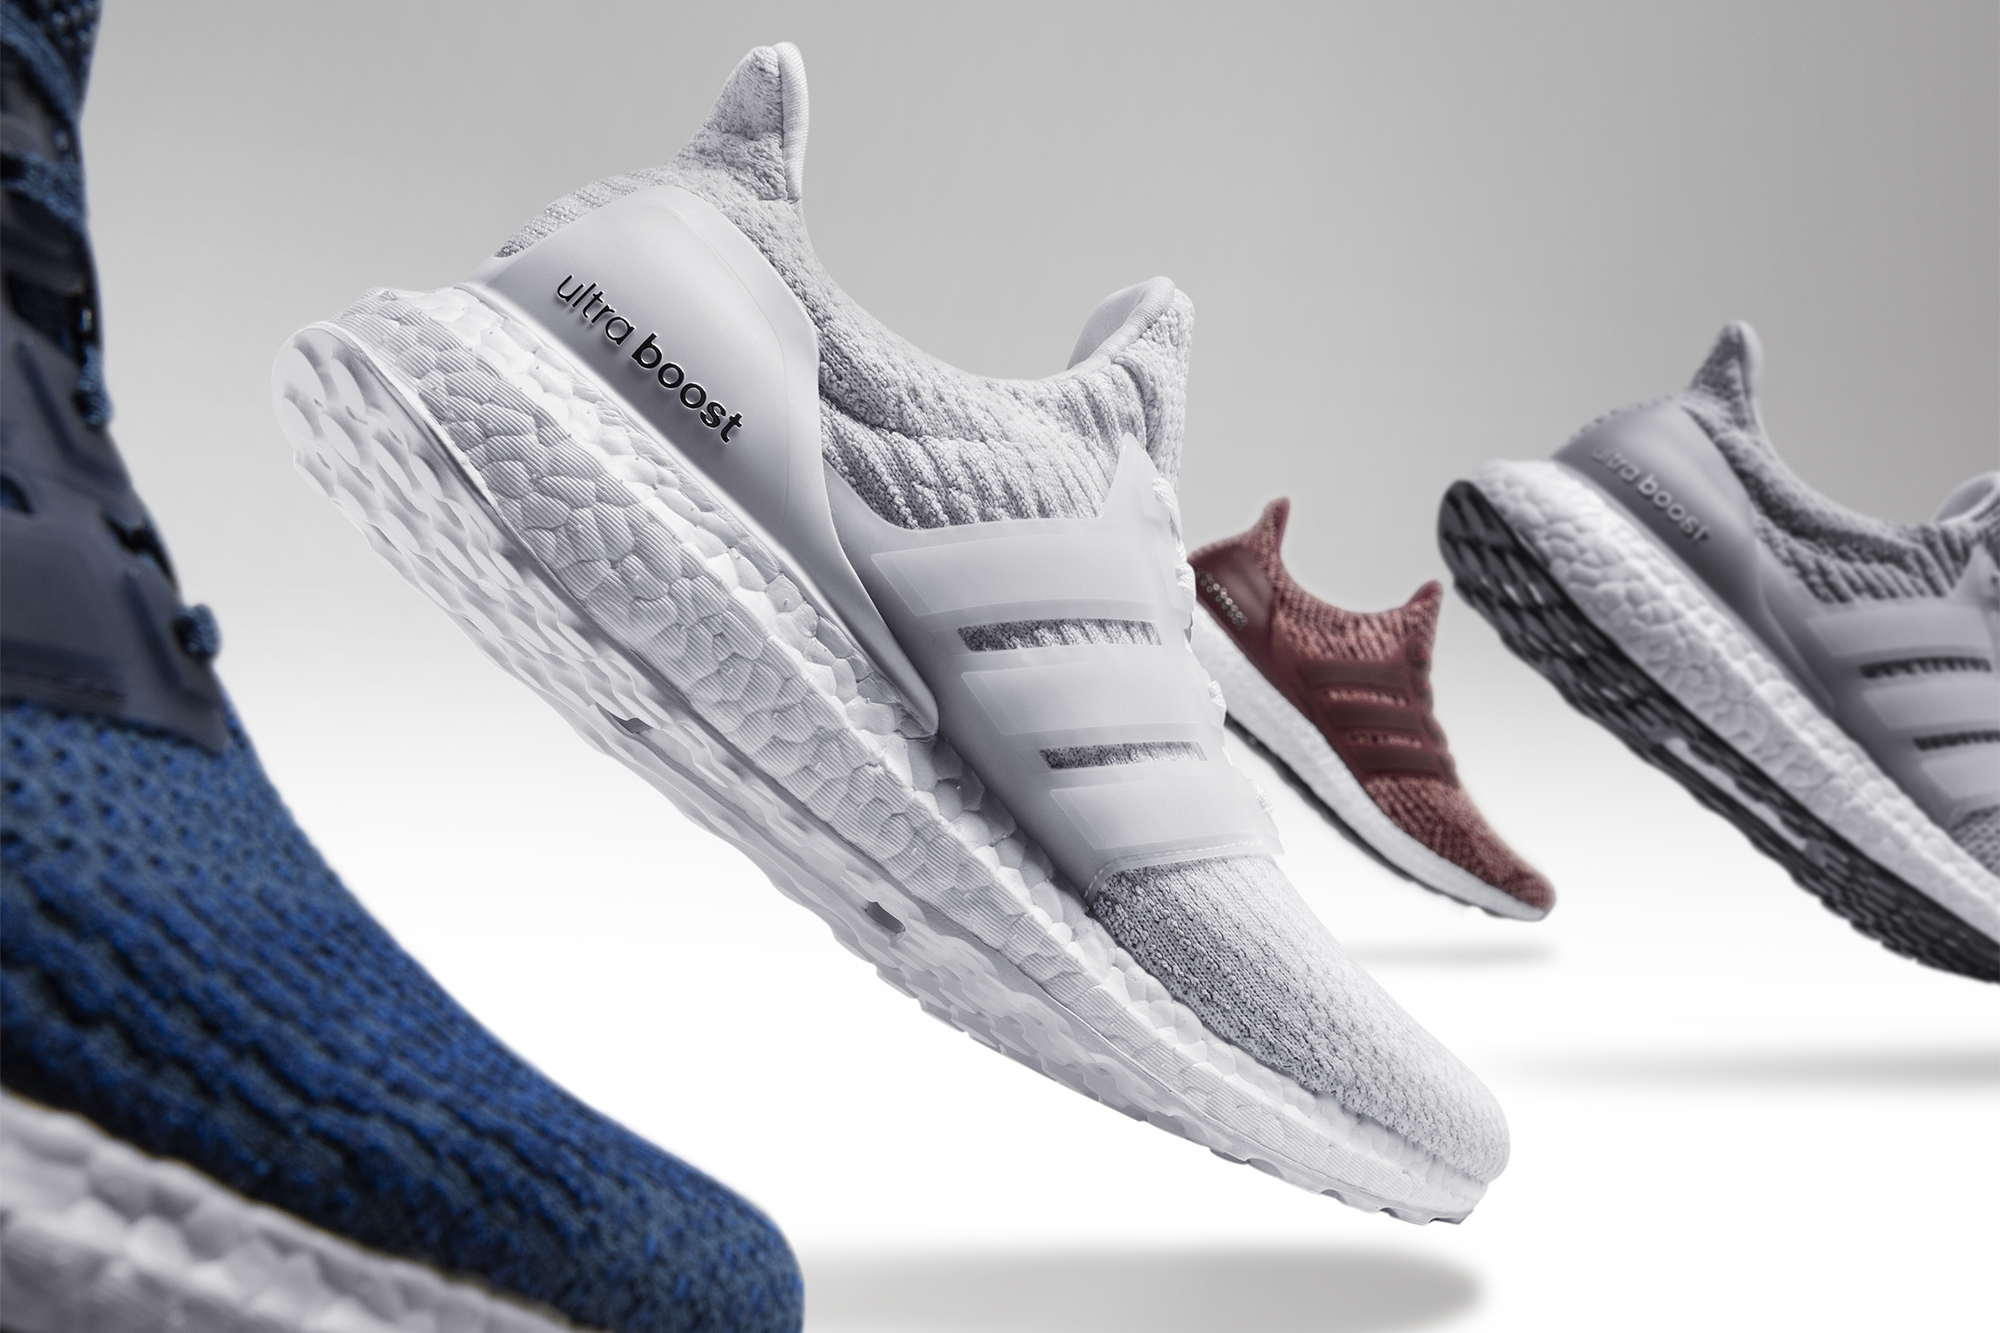 adi_ultraboost_dec_pr_mens_05